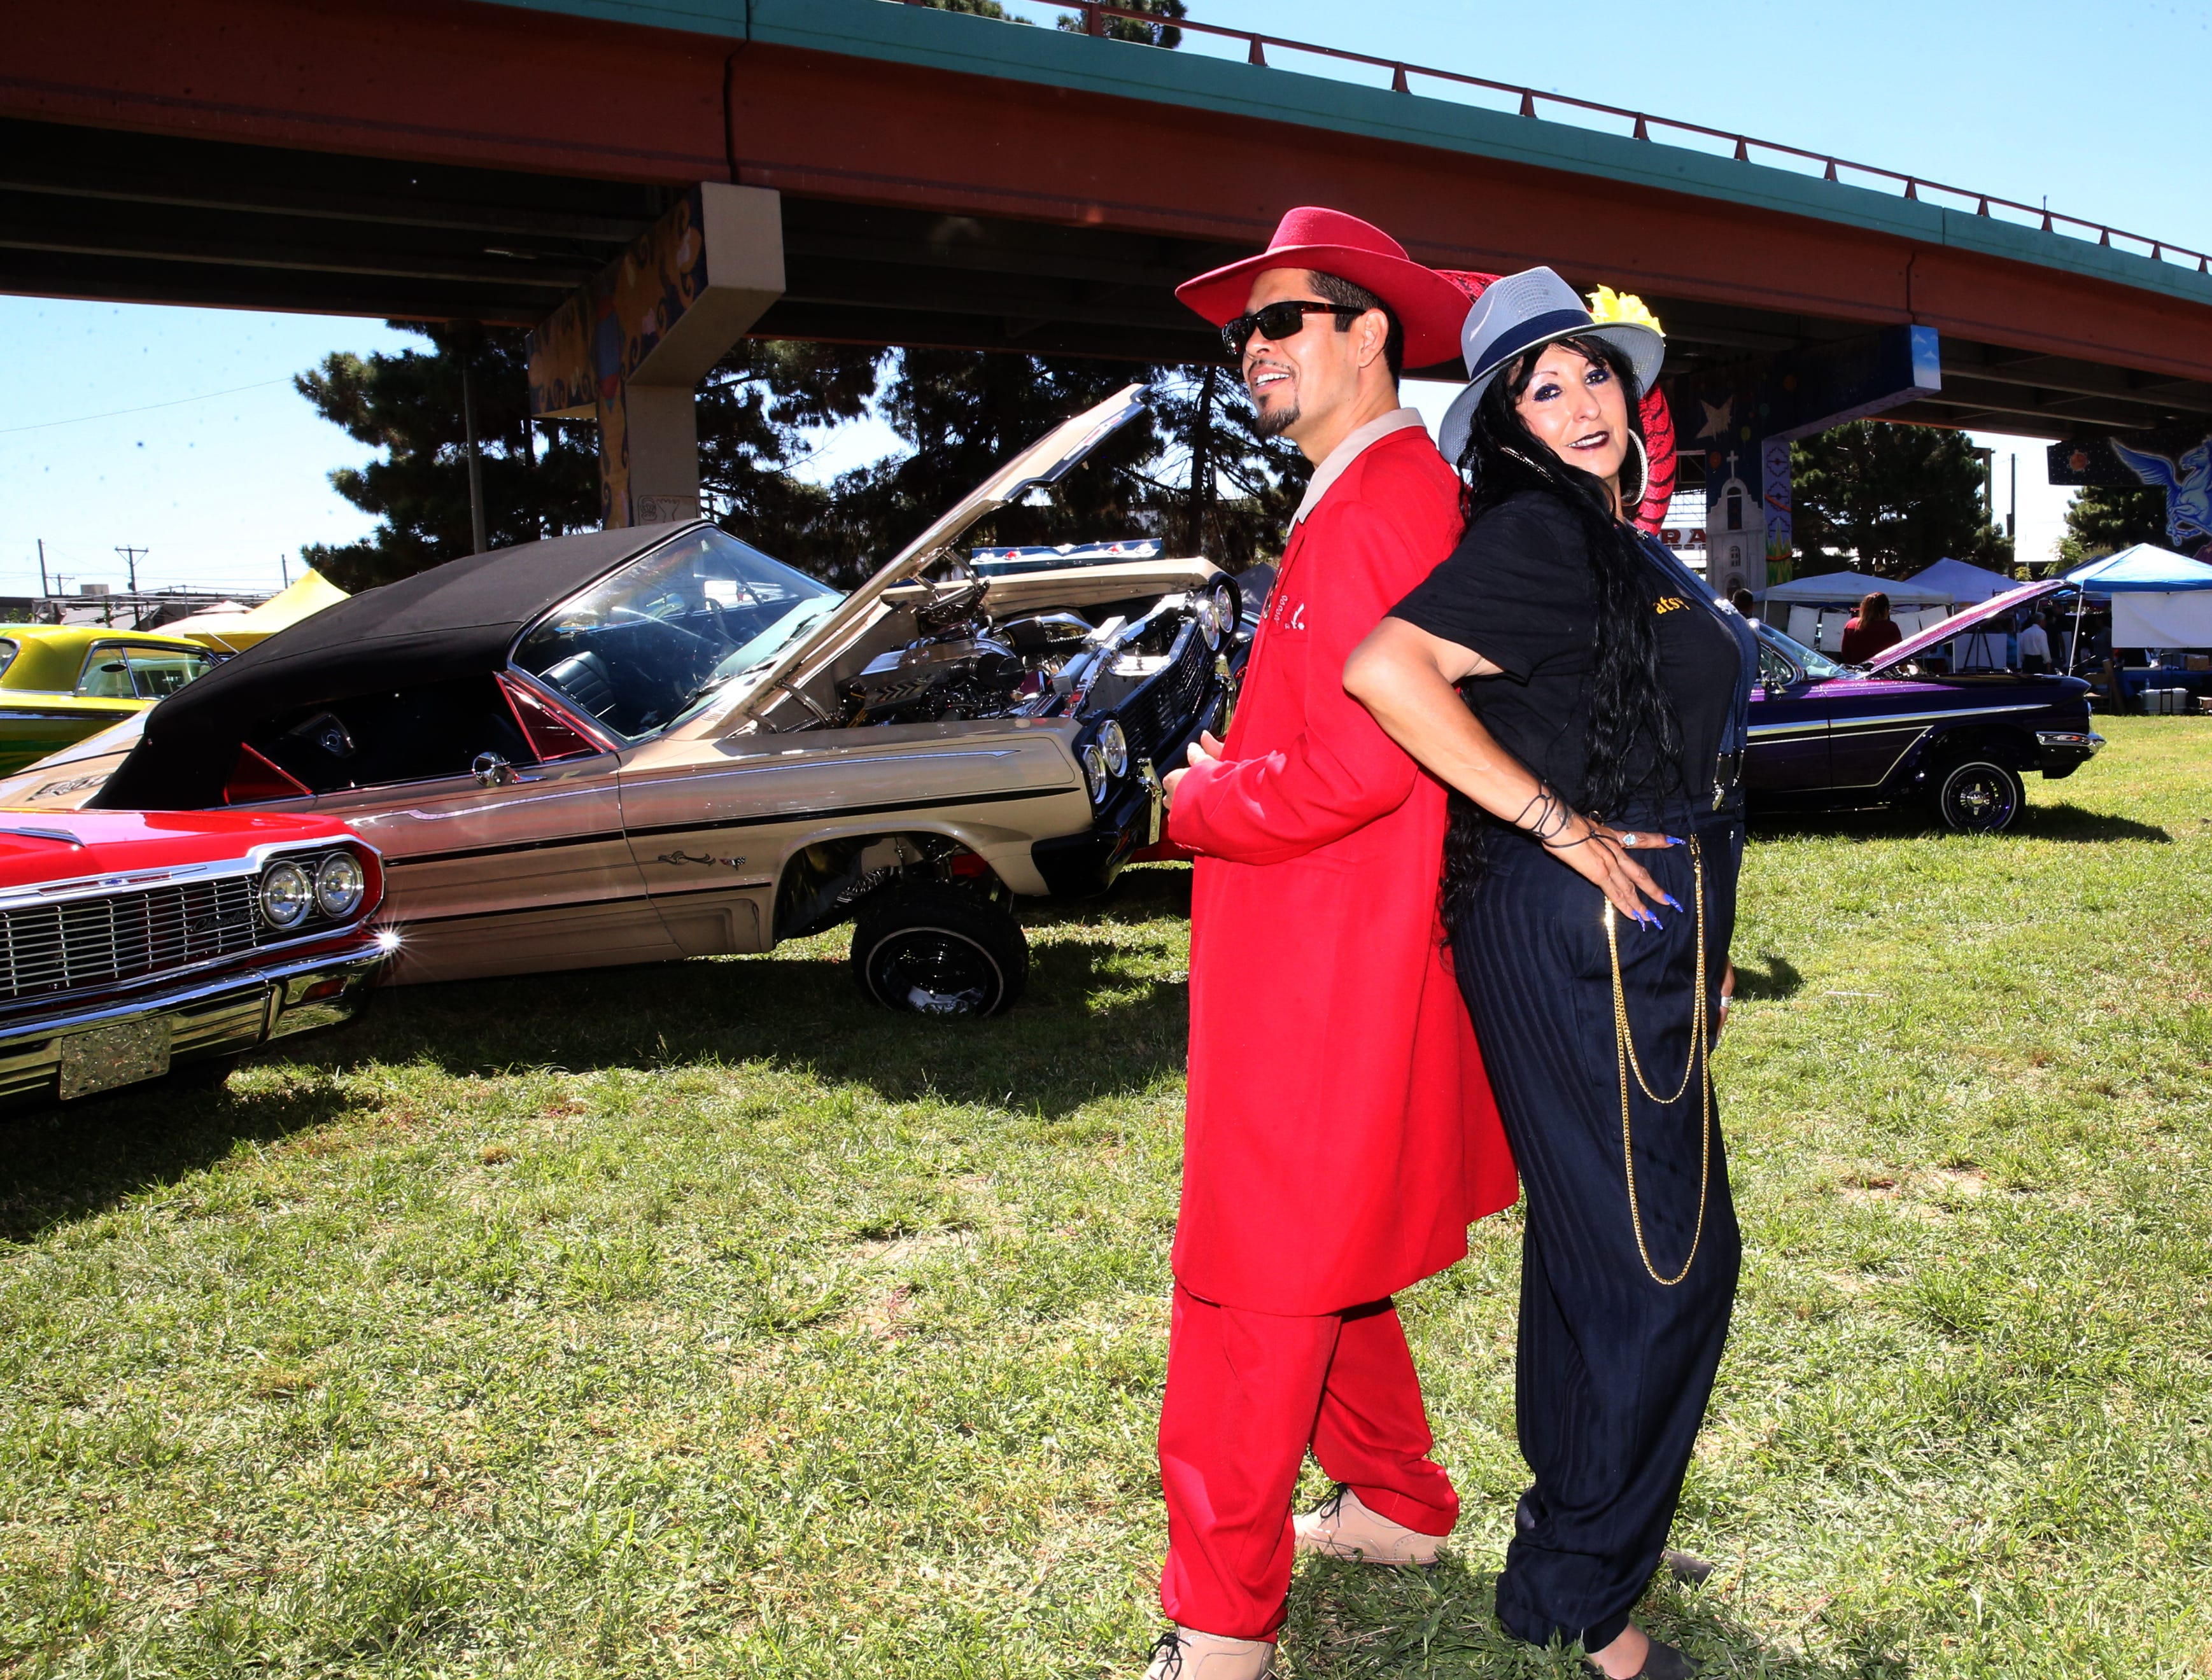 Francisco Perez and Patsy Sanchez in traditional Pachuco and Pachuca outfits Sunday.